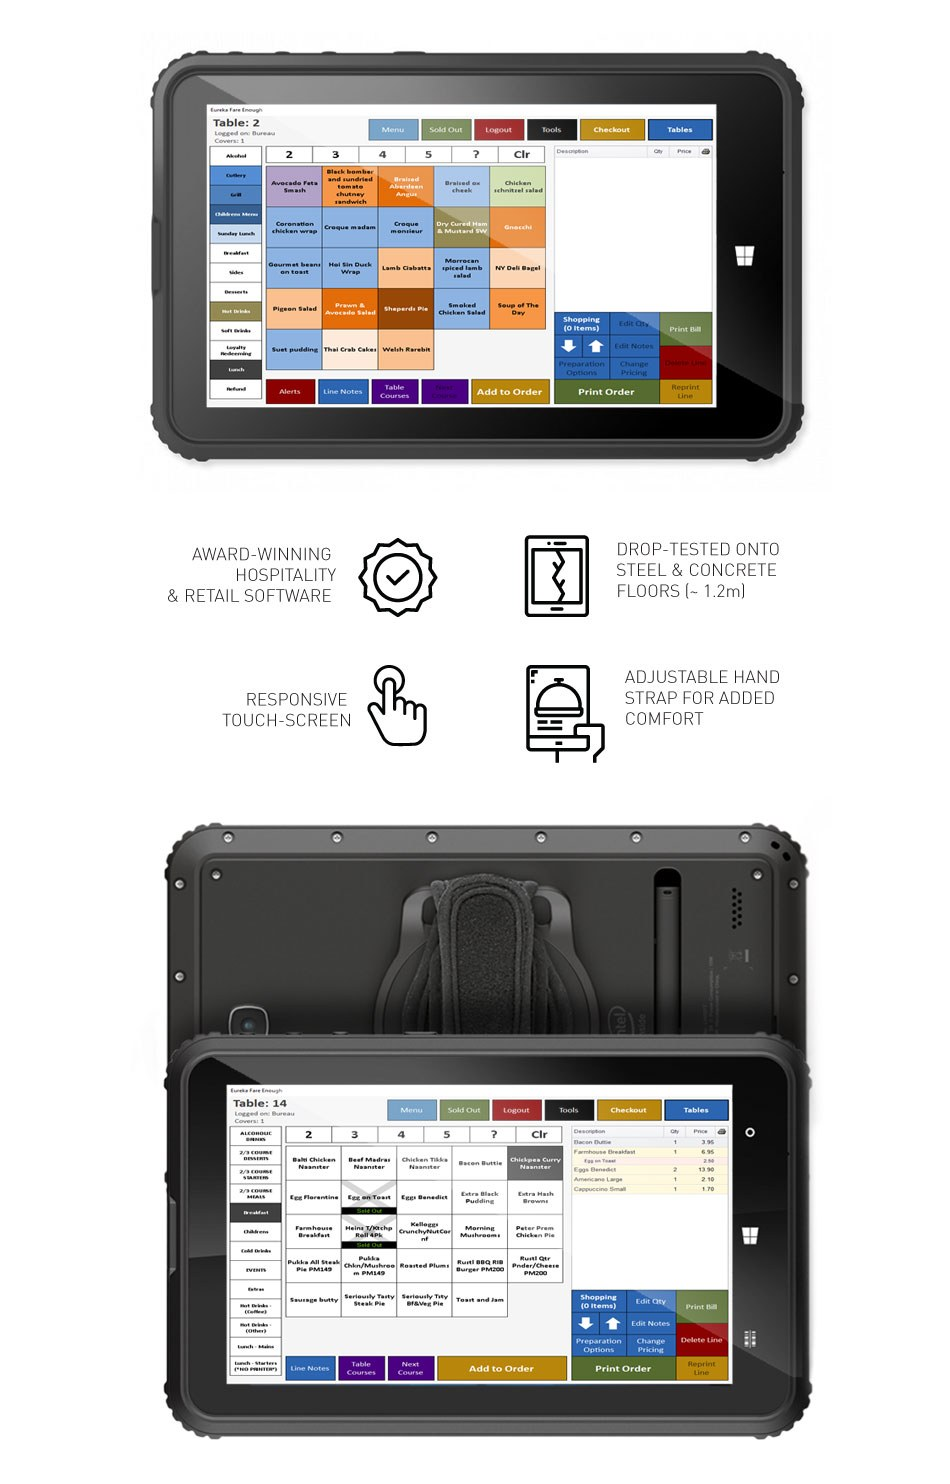 Touch Screen Tablet EPOS System For Cafes Restaurants